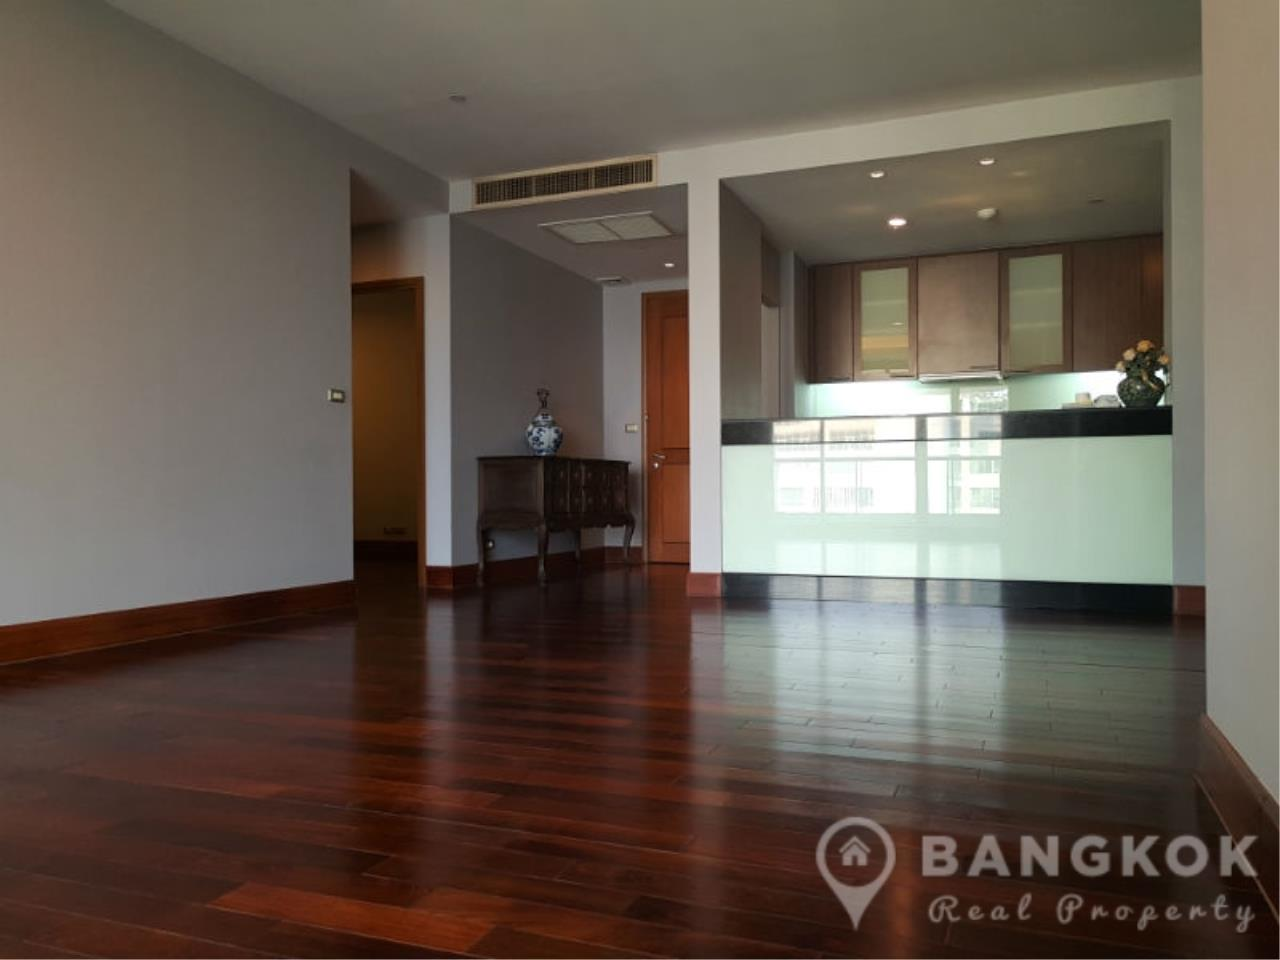 Bangkok Real Property Agency's Sky Villas (Ascott) Sathorn | Spacious High Floor 2 +1 Bed 2 Bath 1